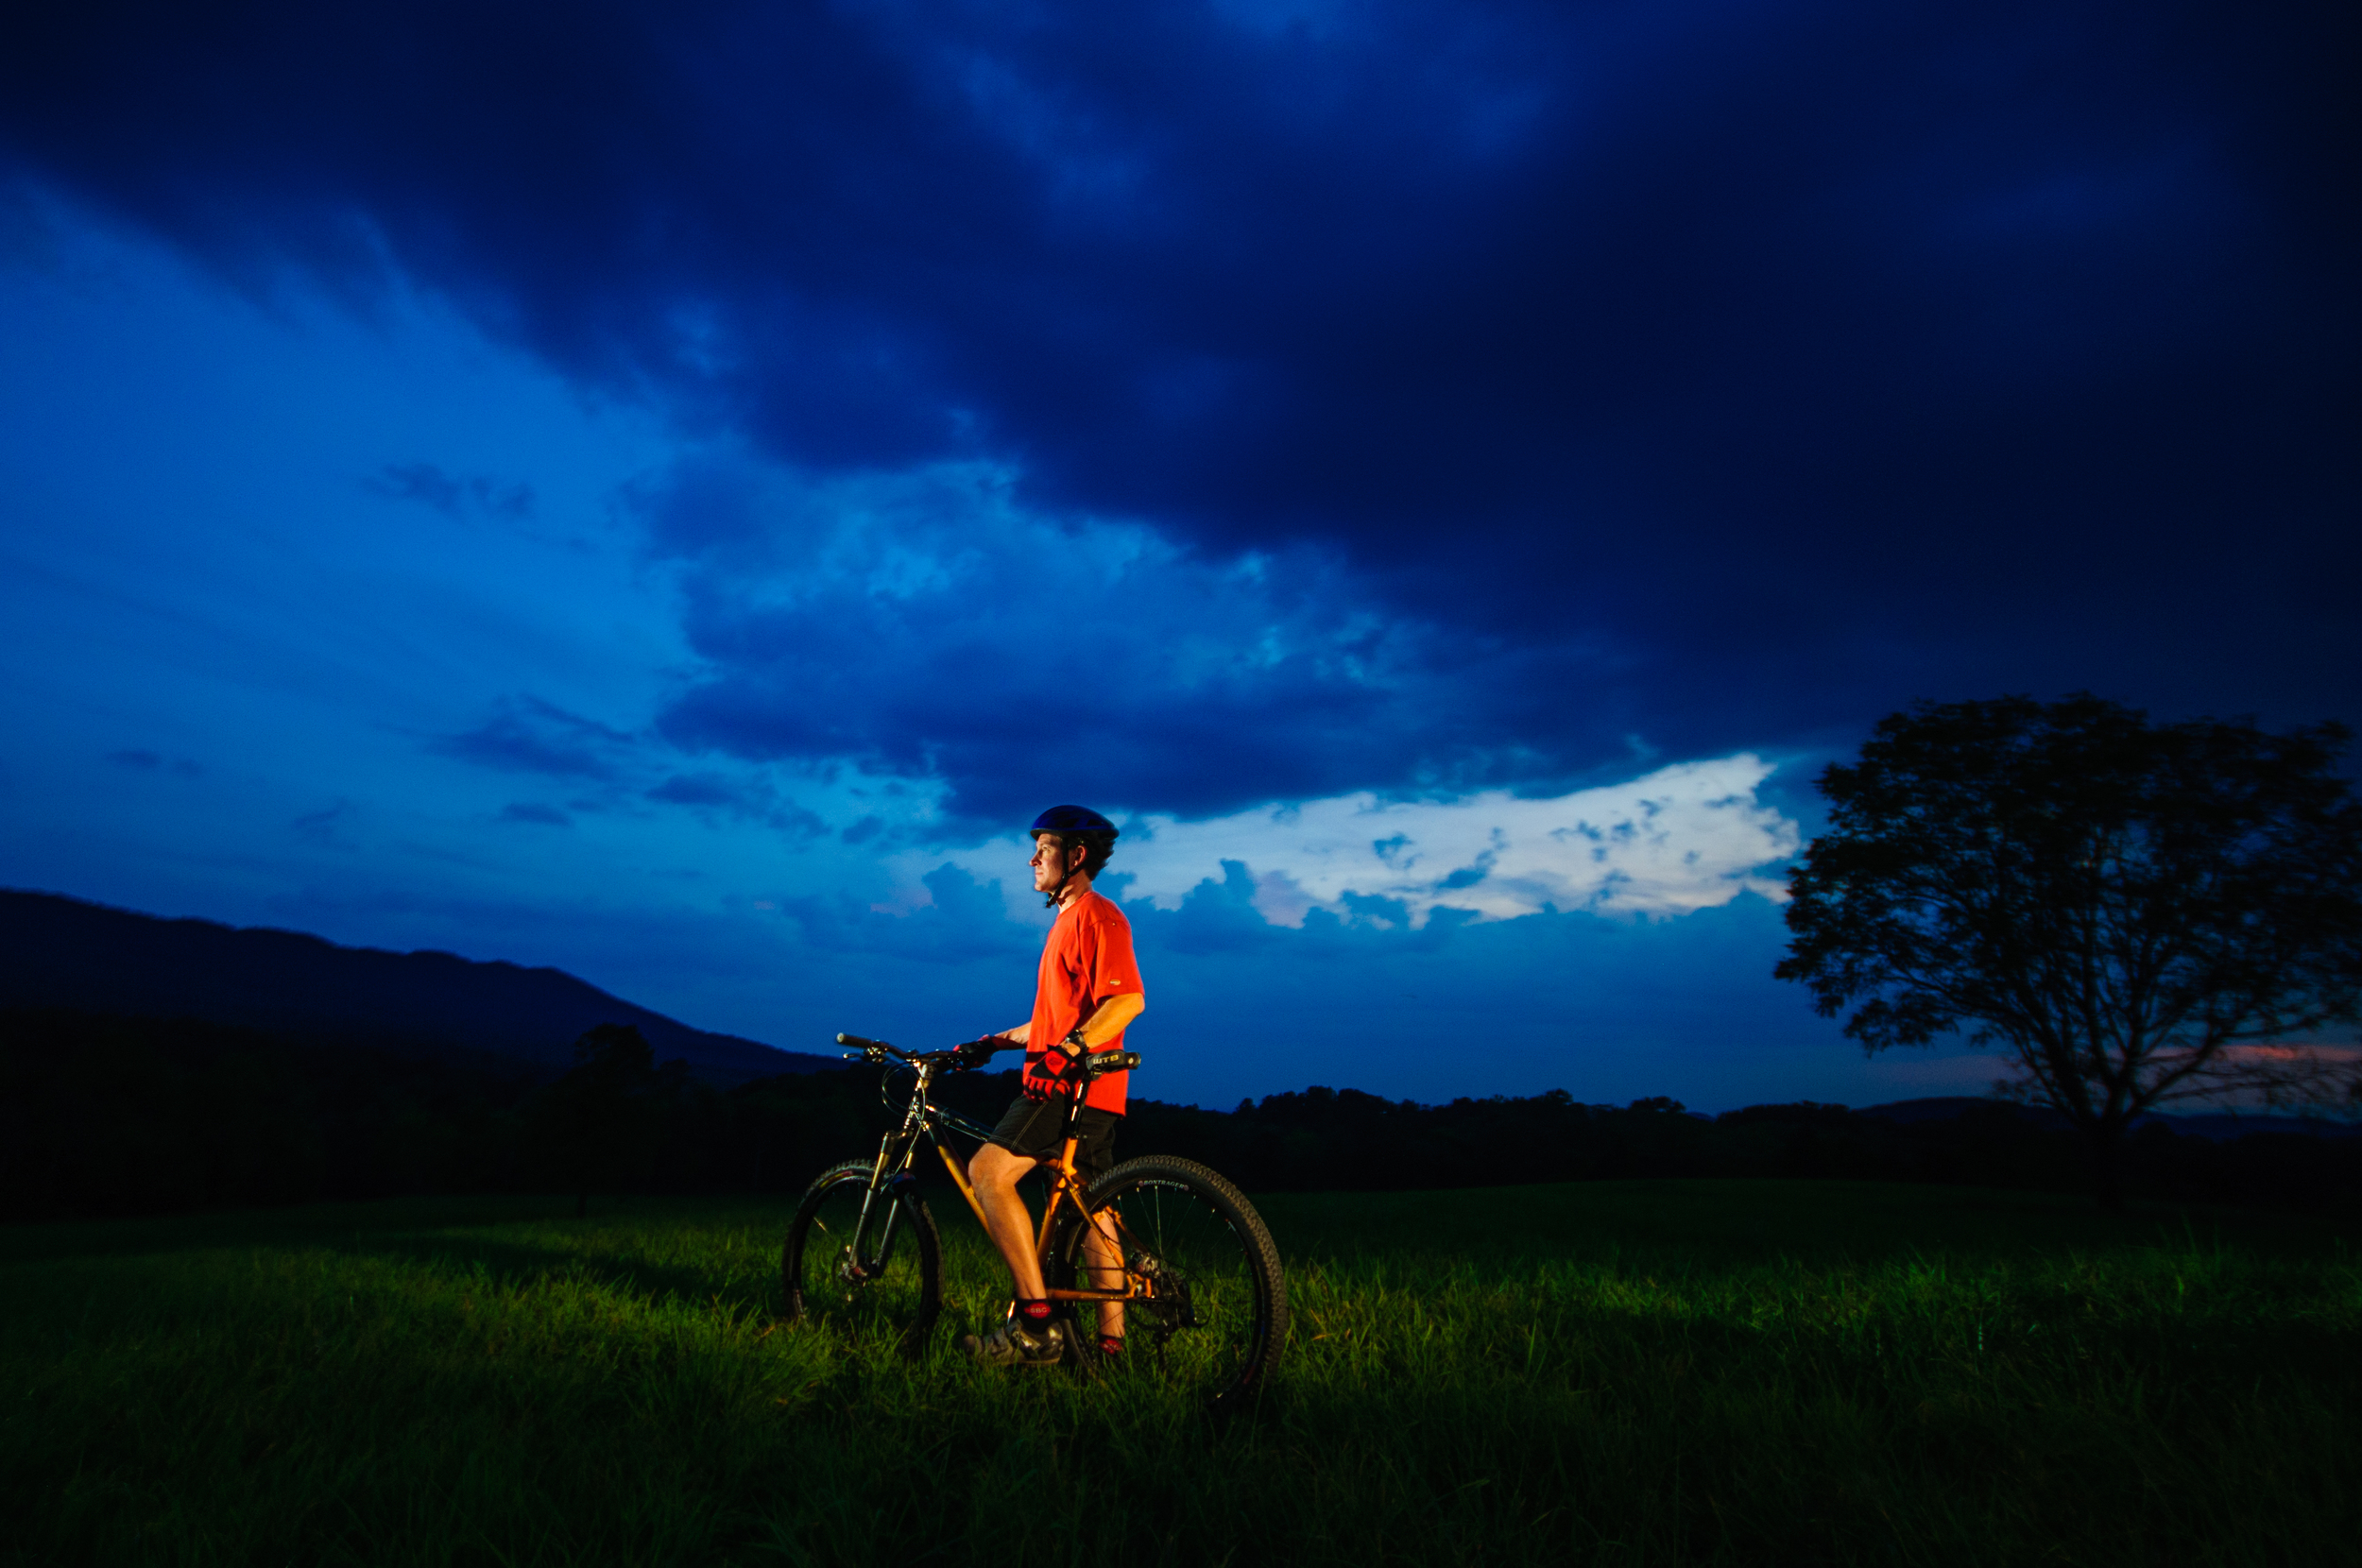 001+-+Cycling+in+the+Mountains.jpg